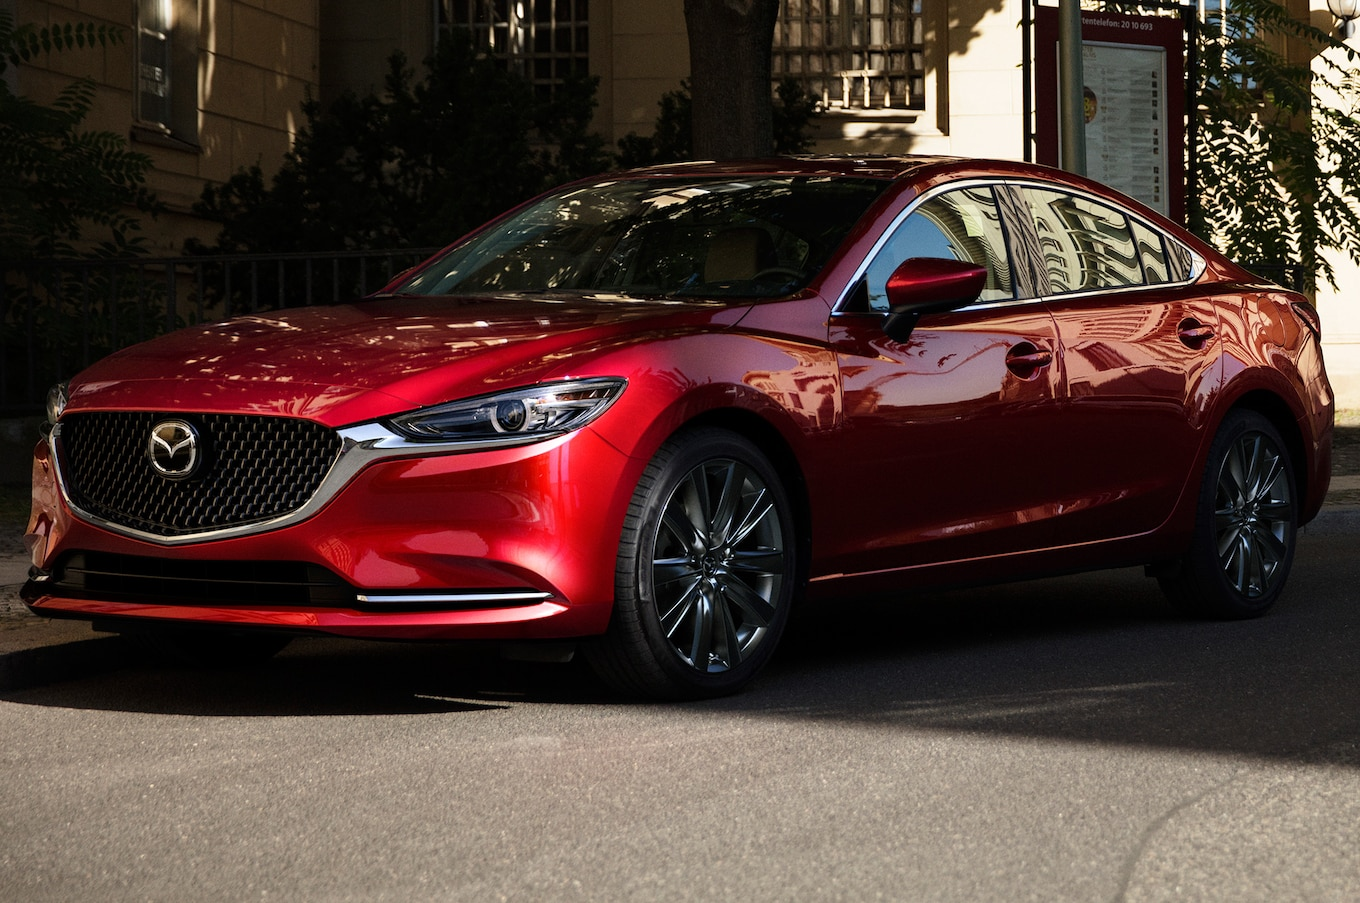 2018 Mazda6 First Look Mazda's Midsizer Gets A Refresh